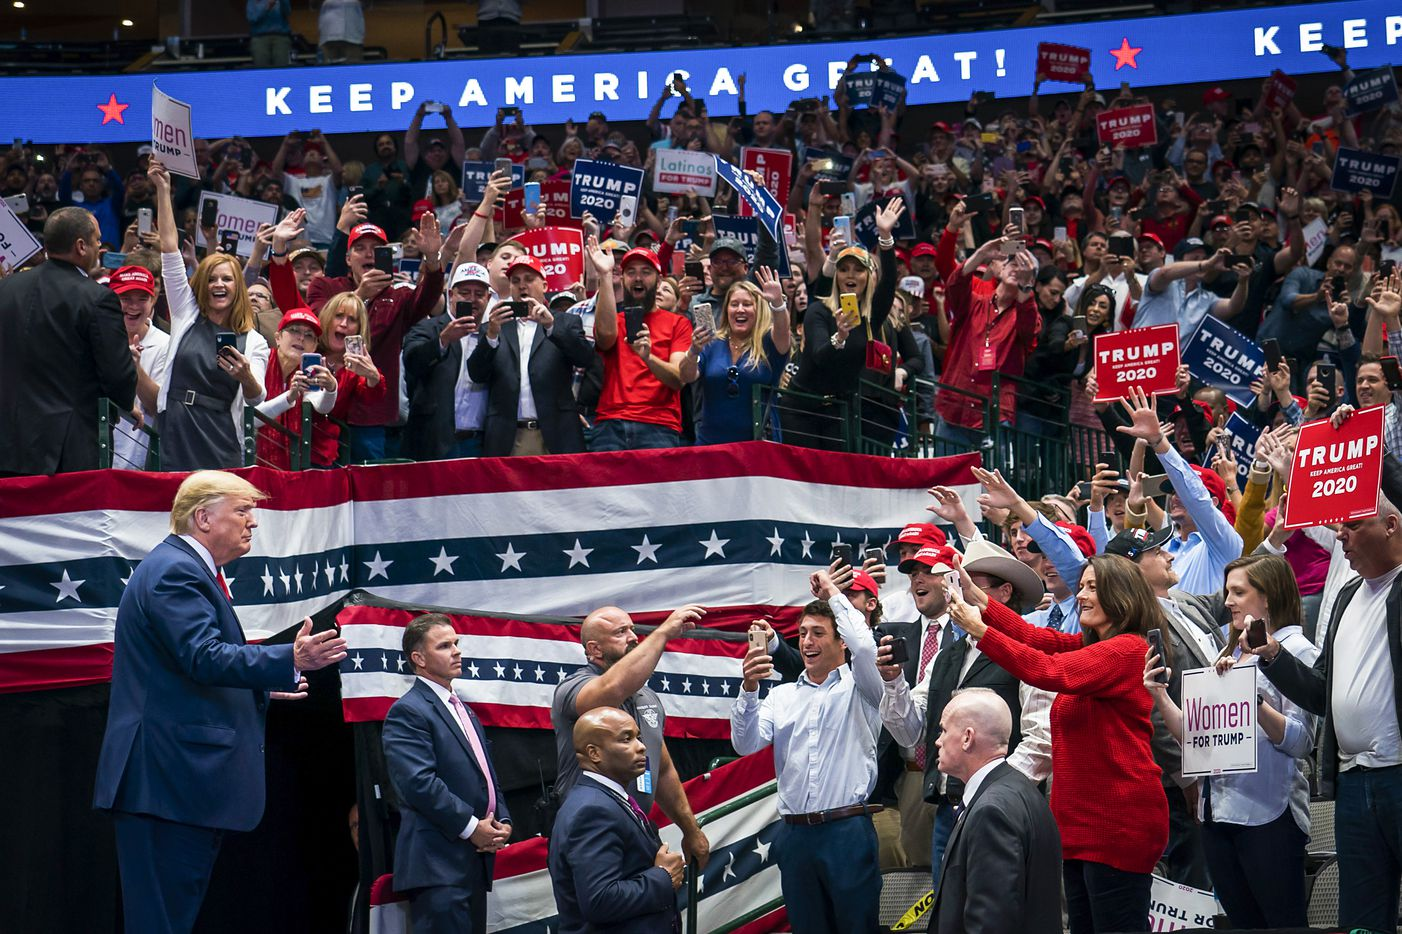 President Donald Trump acknowledges the crowd as he arrives for a campaign rally at the American Airlines Center on Thursday, Oct. 17, 2019, in Dallas.